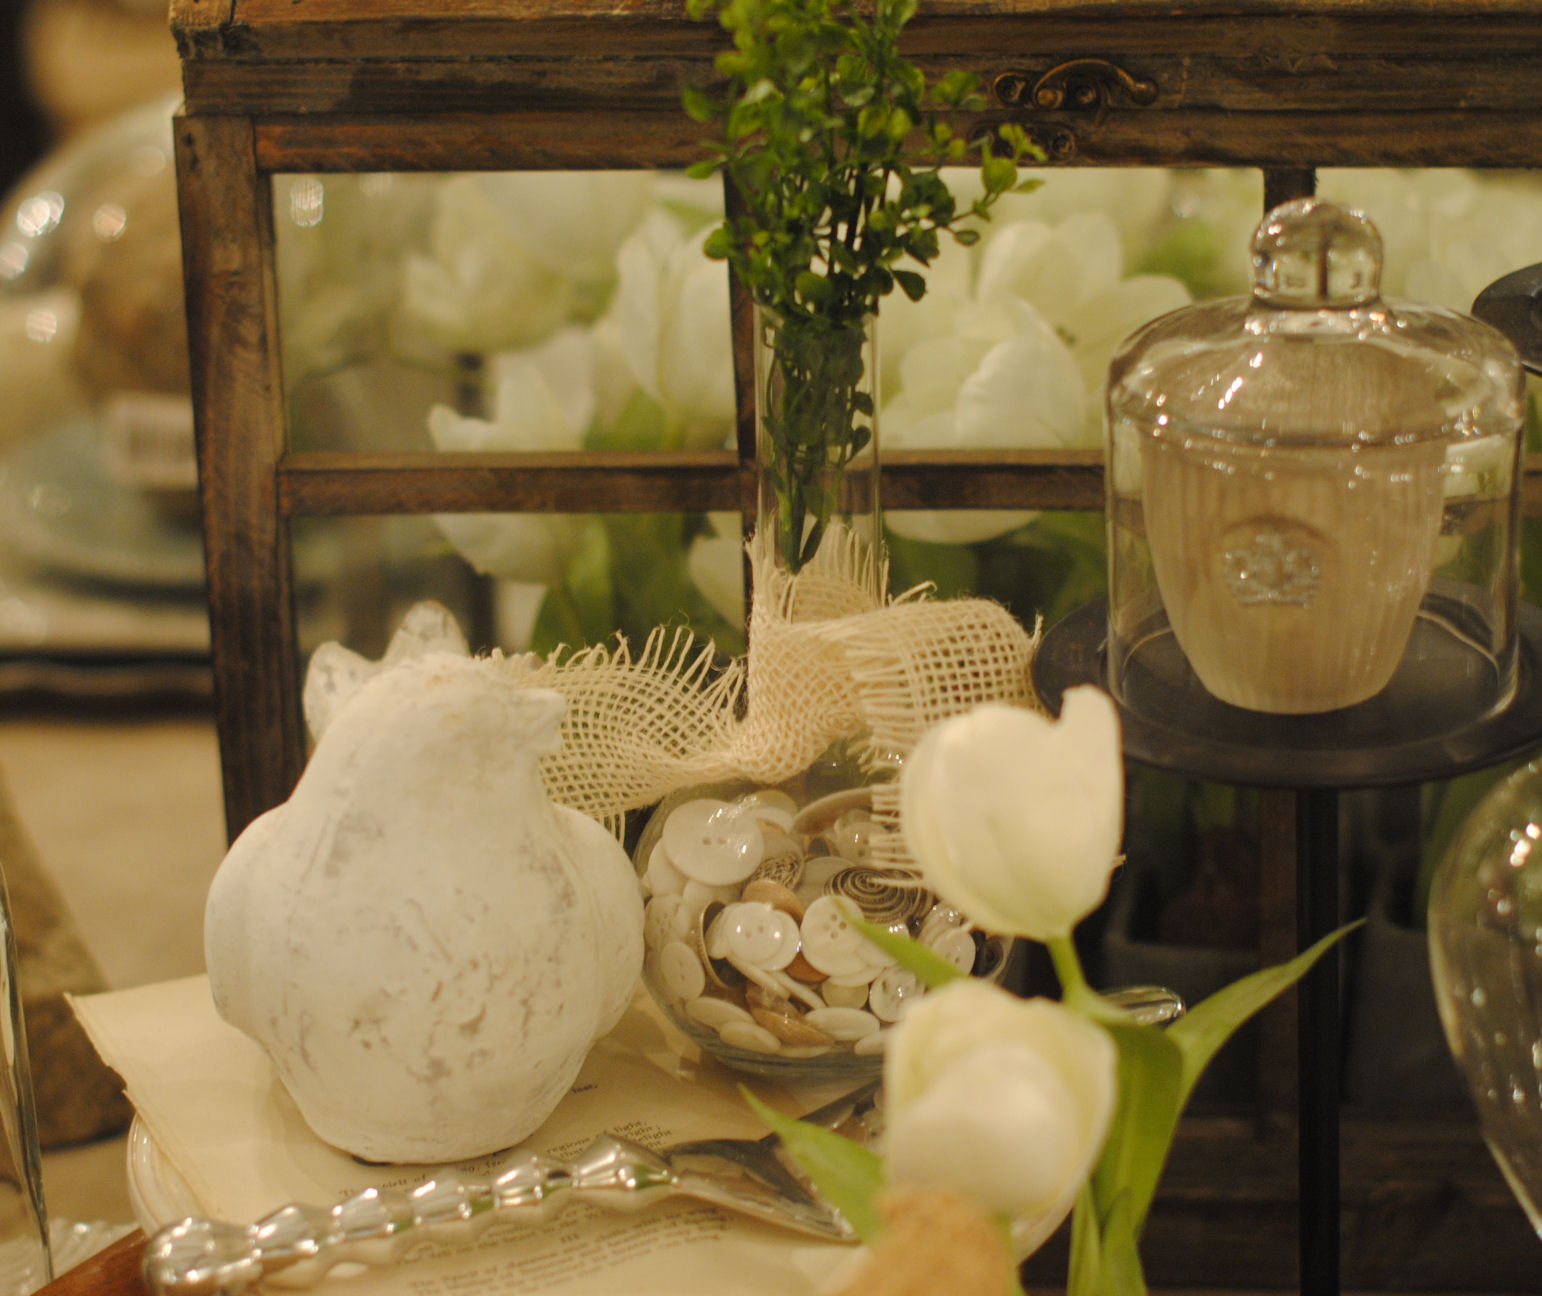 LaurieAnna's Vintage Home: Show & Tell